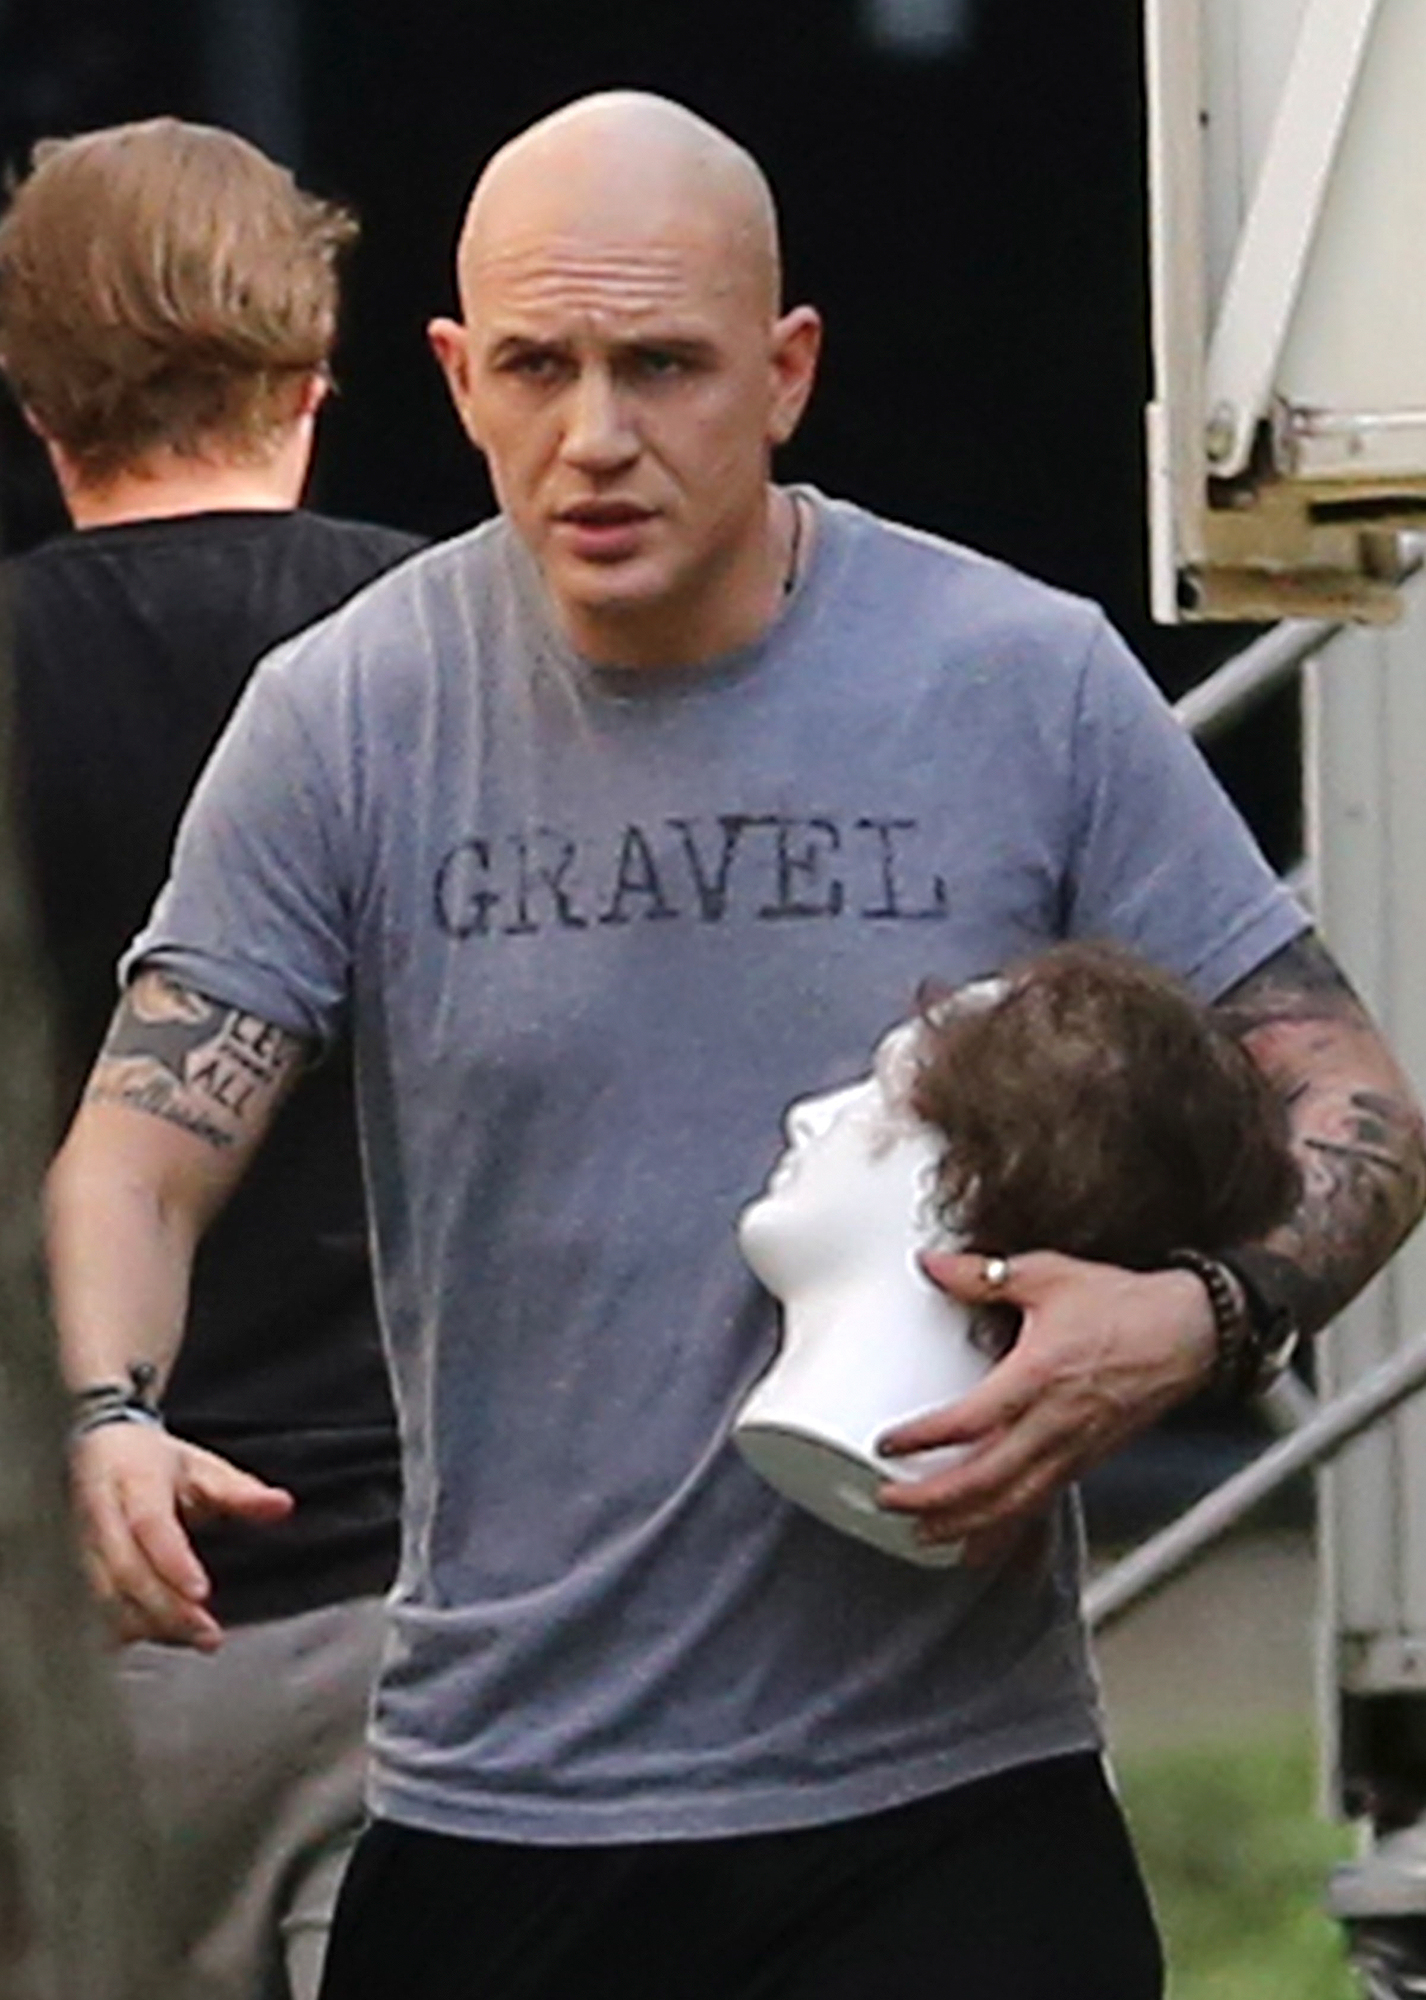 EXCLUSIVE: *NO WEB UNTIL 3PM PST 3RD APRIL* First photos of a skinhead Tom Hardy on the set of his new Al Capone movie